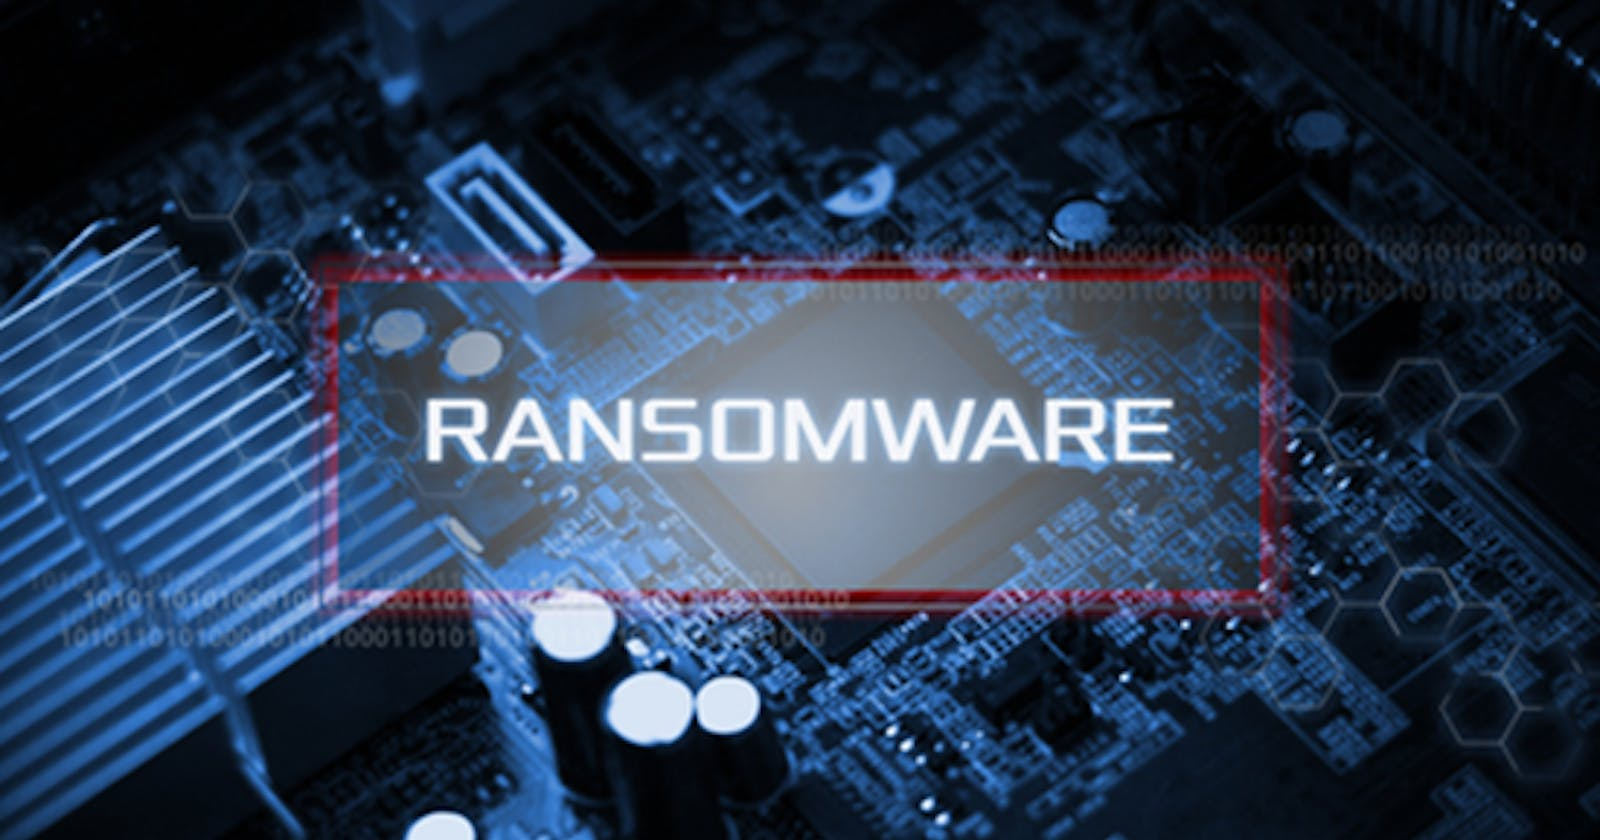 Ransomware—The Enigmatic Virus Attack